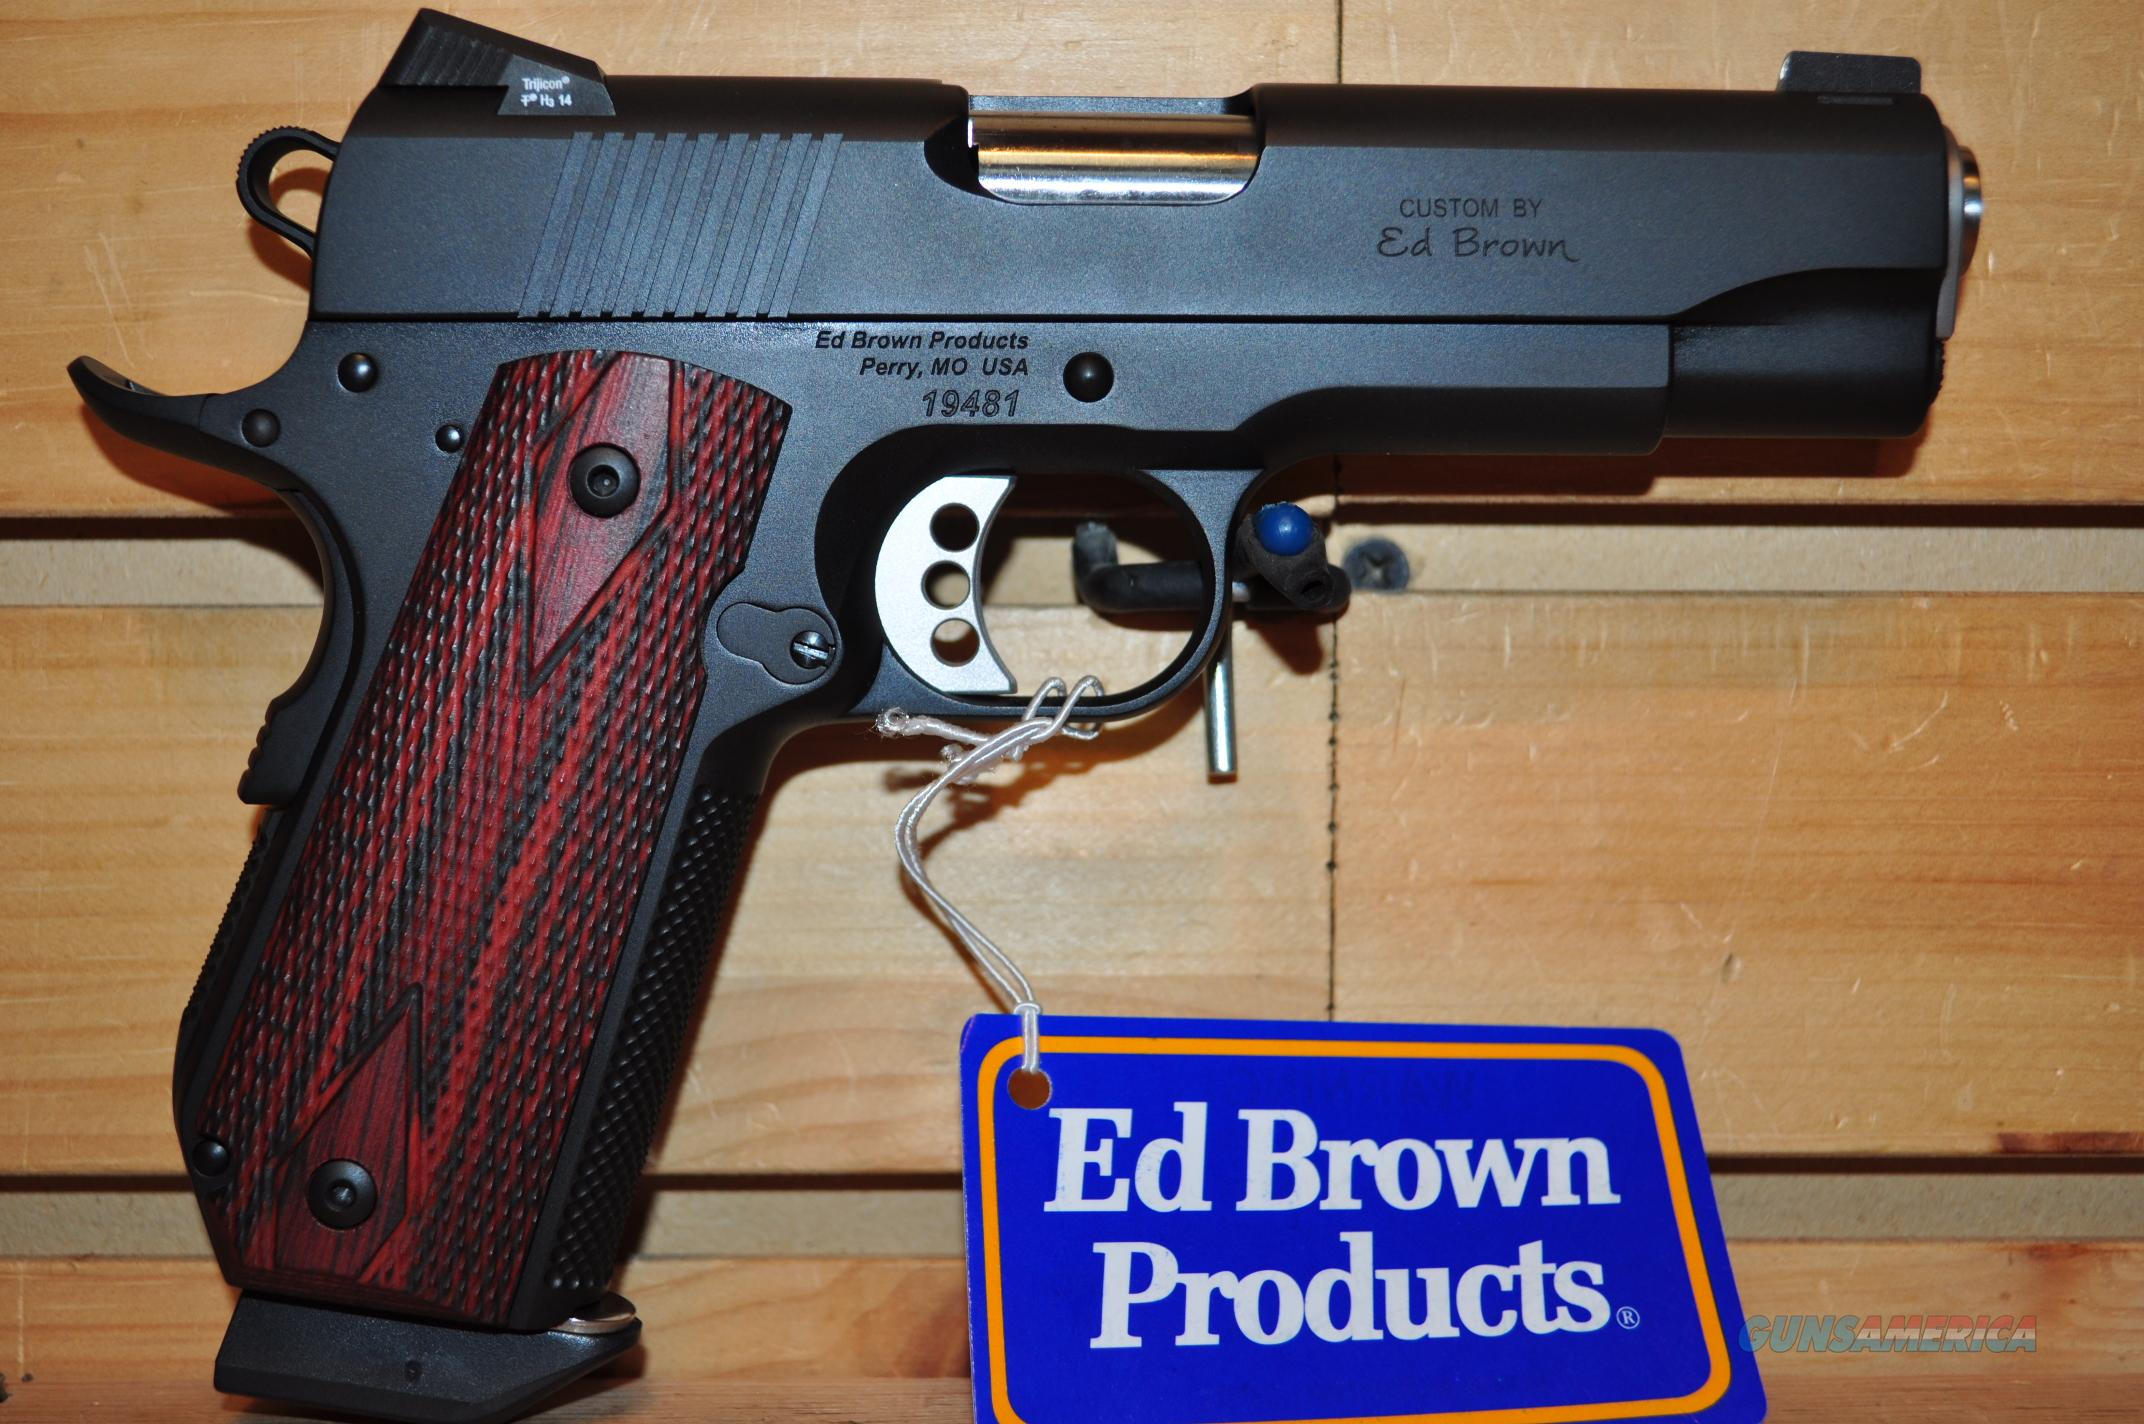 Ed Brown Limited Edition 38 Super Chain Link FREE SHIPPING  Guns > Pistols > Ed Brown Pistols